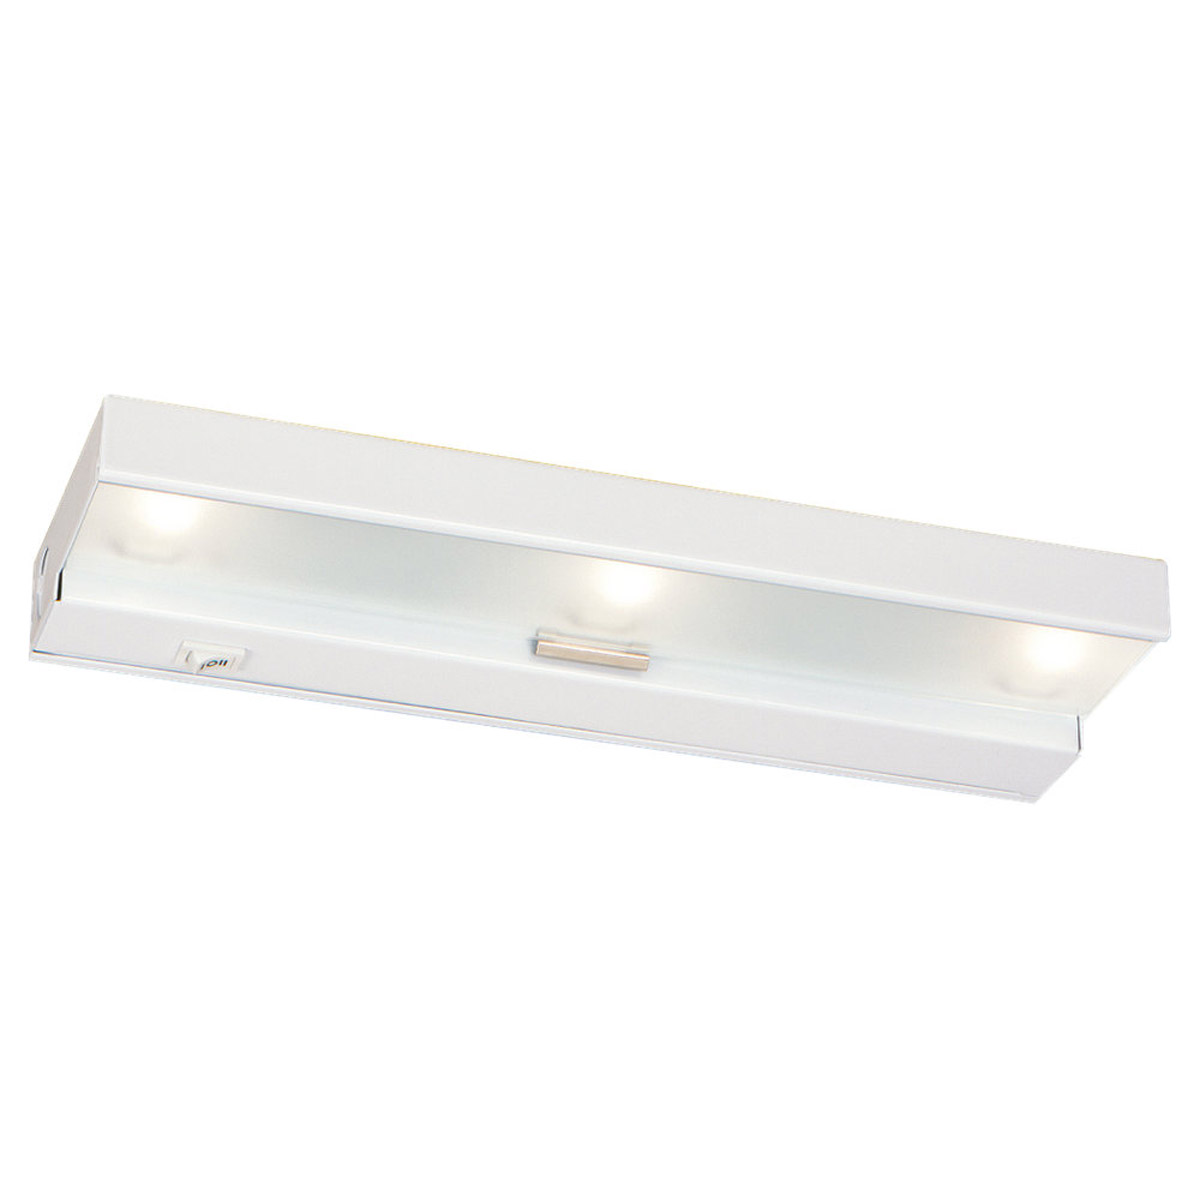 Sea Gull Lighting Undercabinet Lighting 3 Light Undercabinet Xenon in White 98019-15 photo